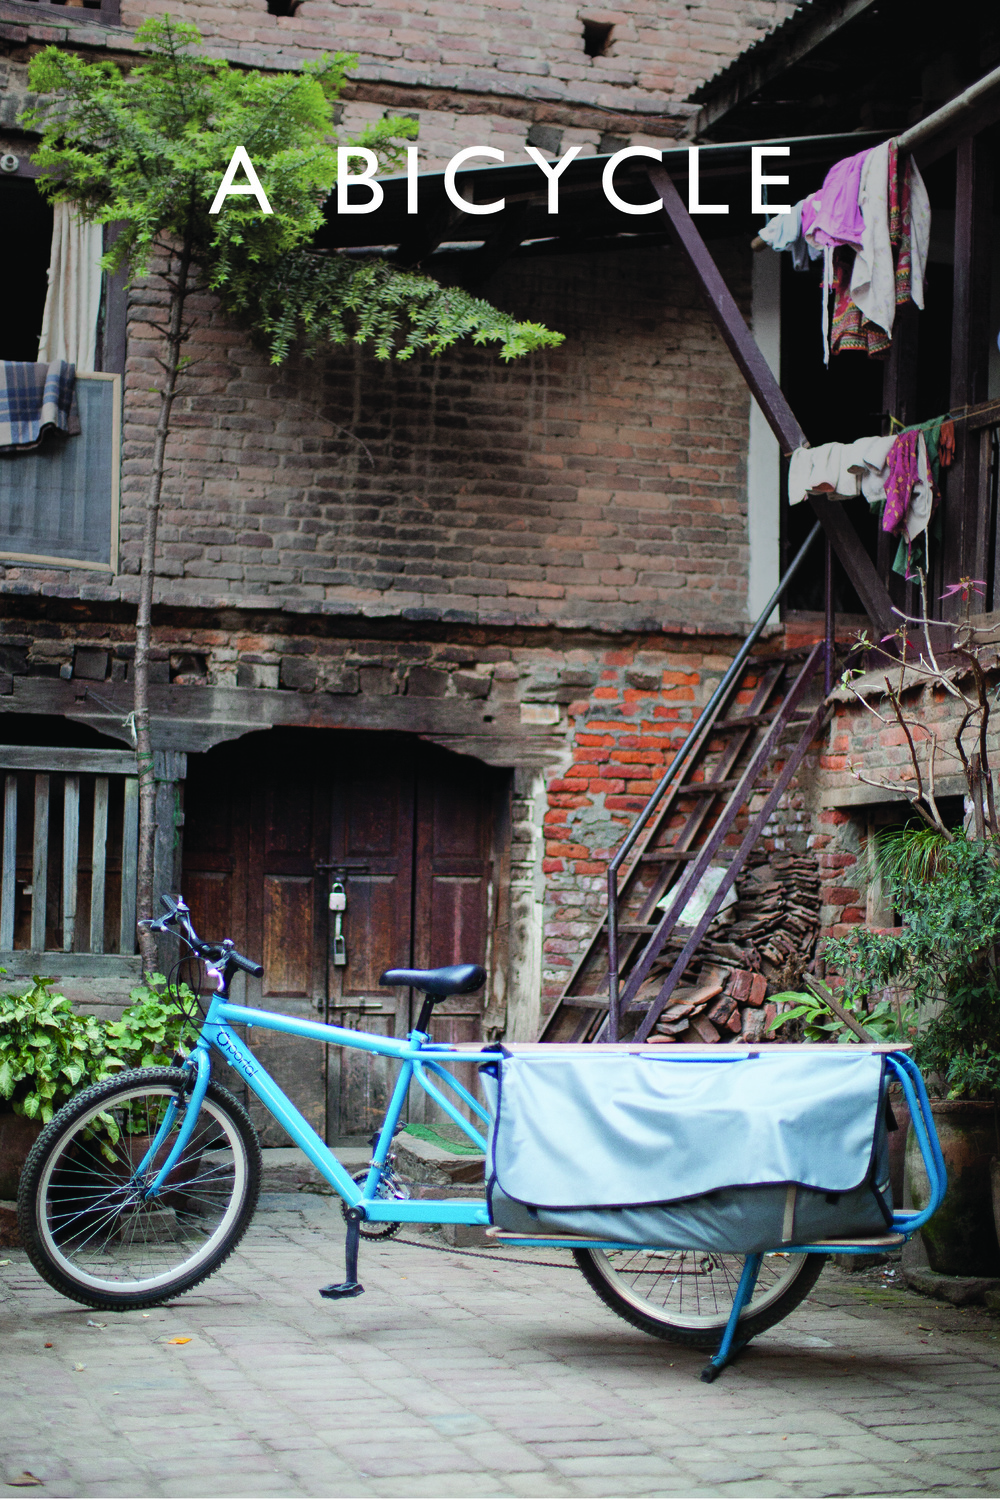 For $250, you can put a Portal Cargo Bike in the hands of an entrepreneur in Nepal.